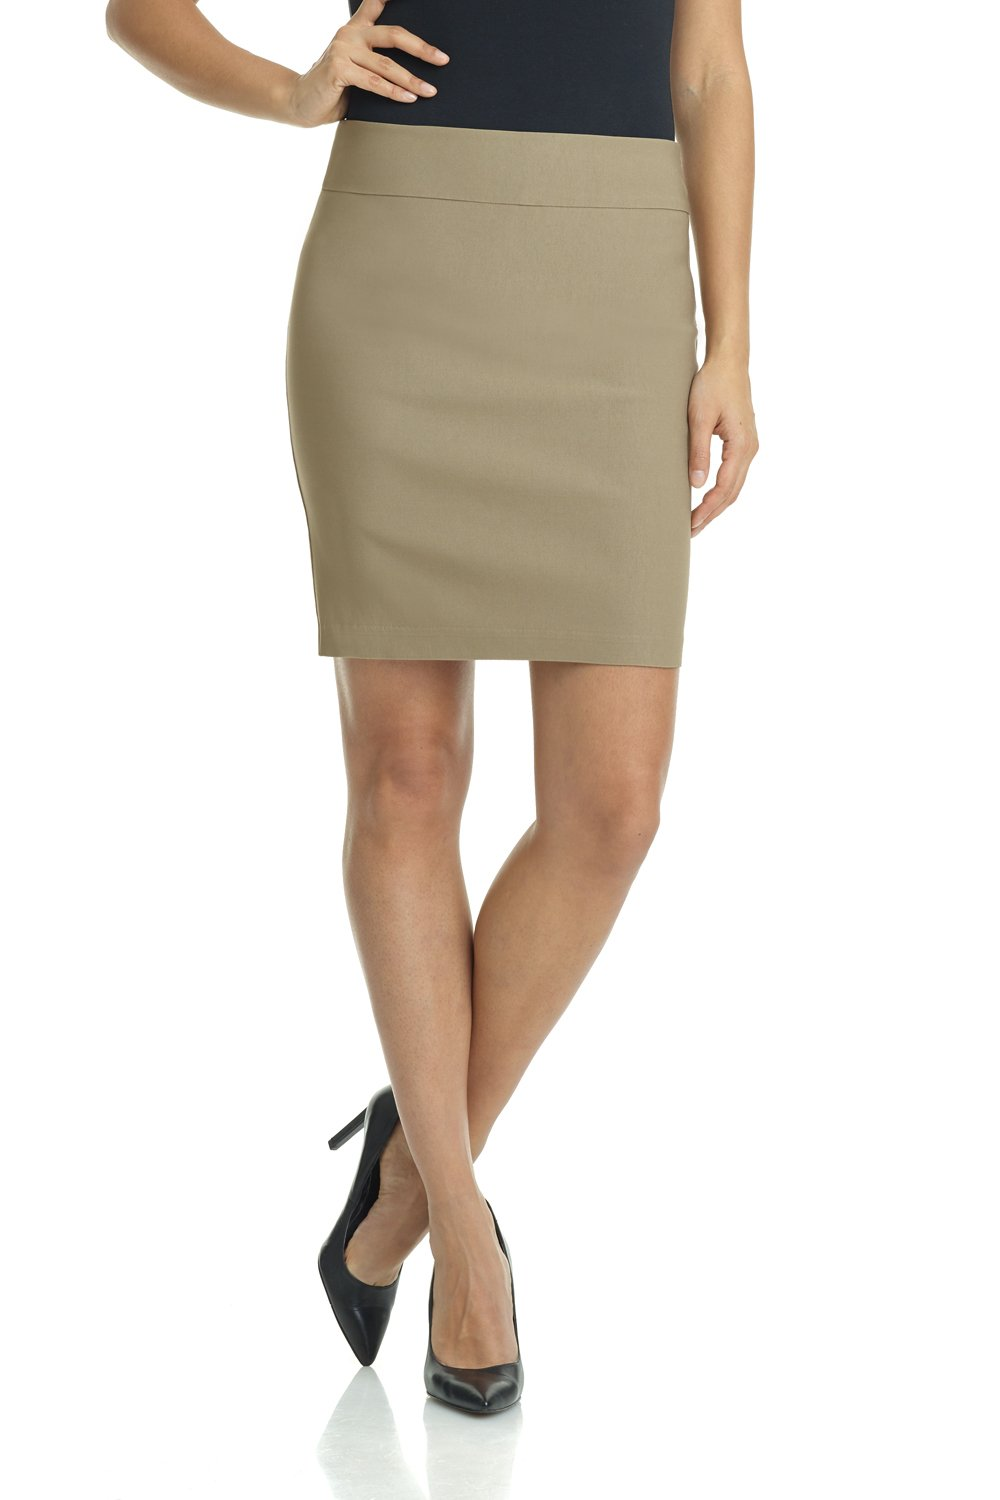 28bac903f84a Rekucci Women's Ease In To Comfort Stretchable Above The Knee Pencil Skirt  19